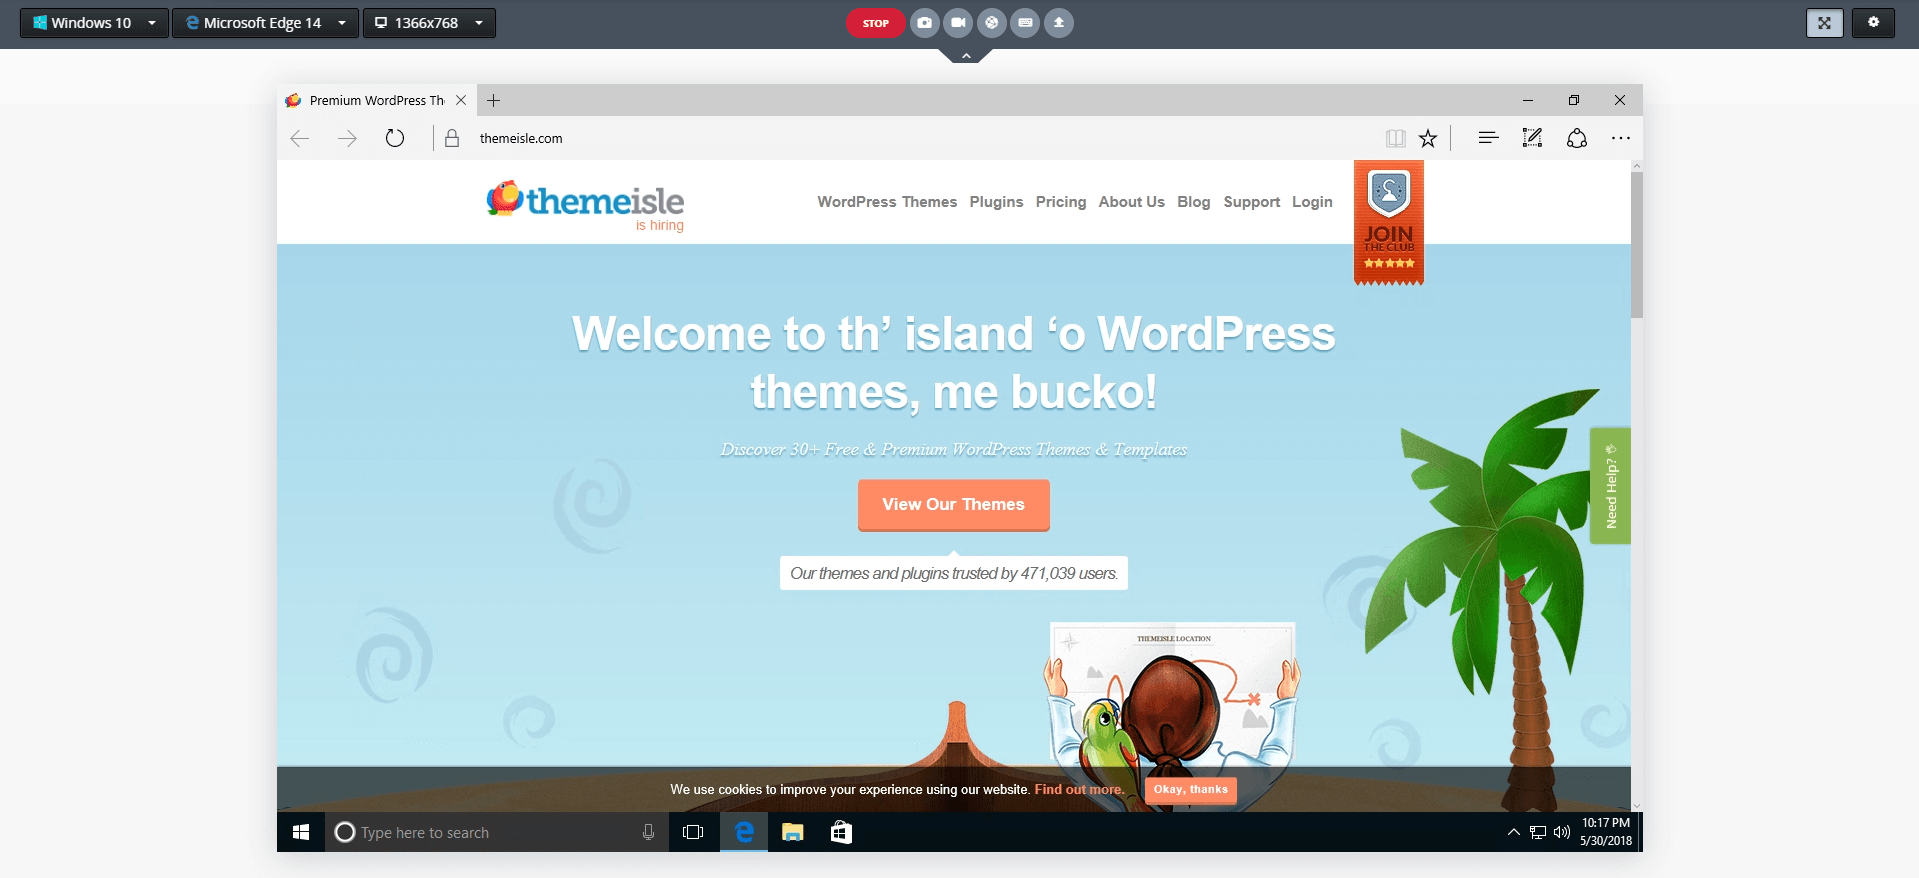 test a website in different browsers with CrossBrowserTesting.